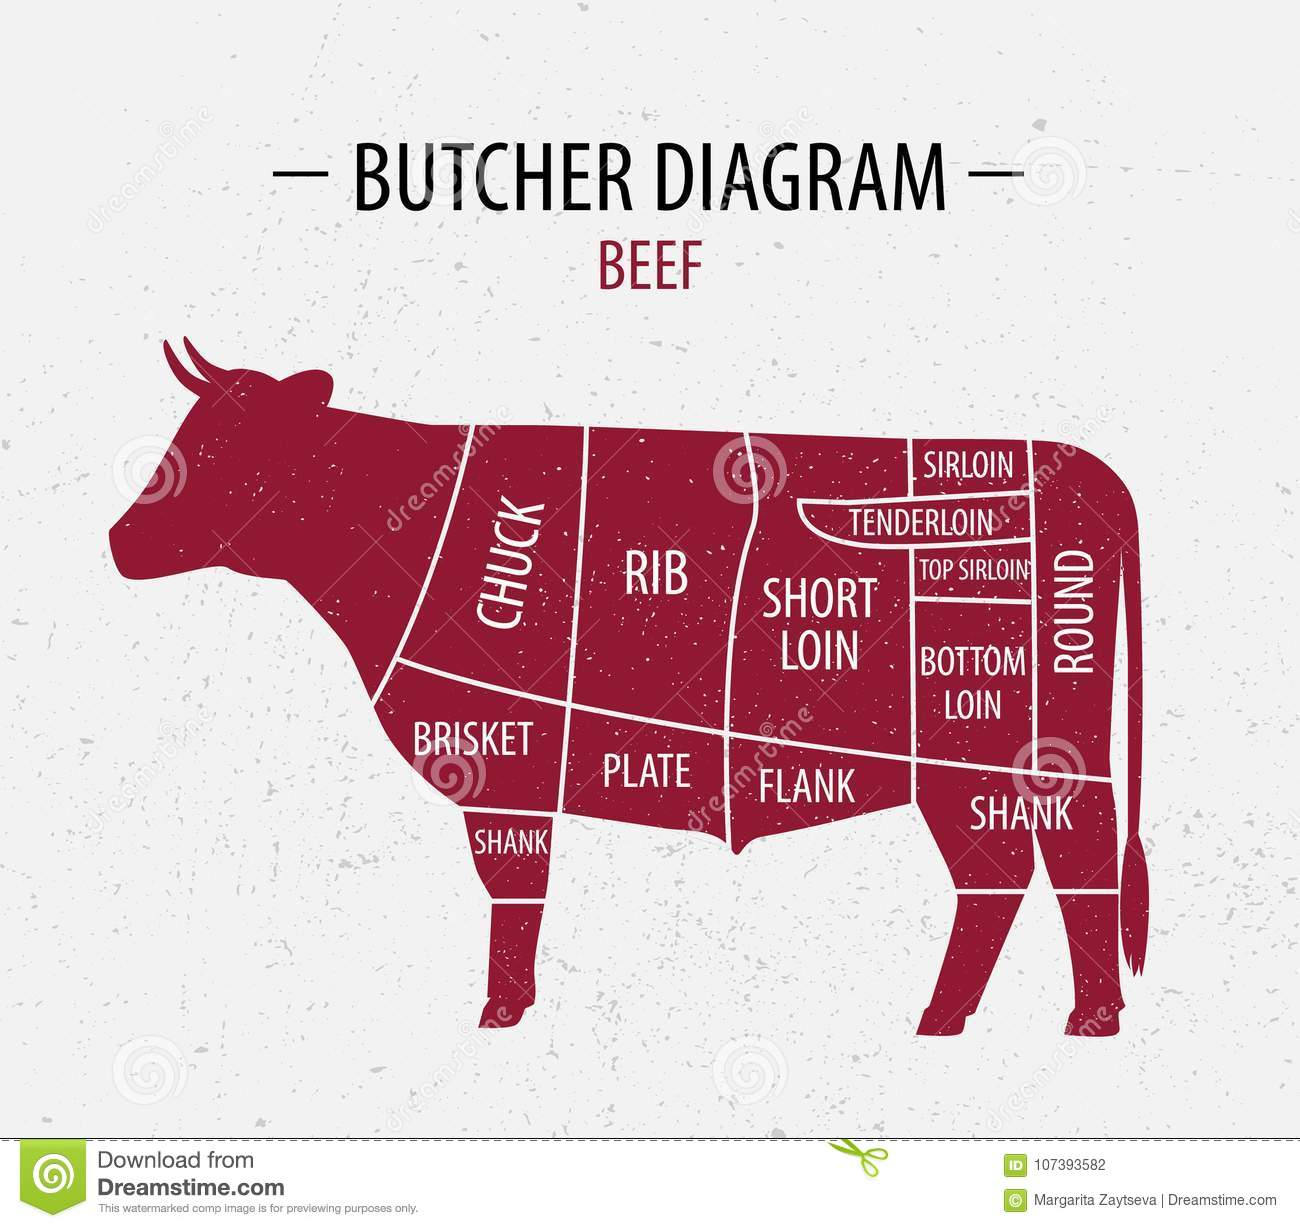 cut beef poster butcher diagram groceries meat stores butcher shop farmer market poster meat related theme cow 107393582 cut of beef poster butcher diagram for groceries, meat stock vector